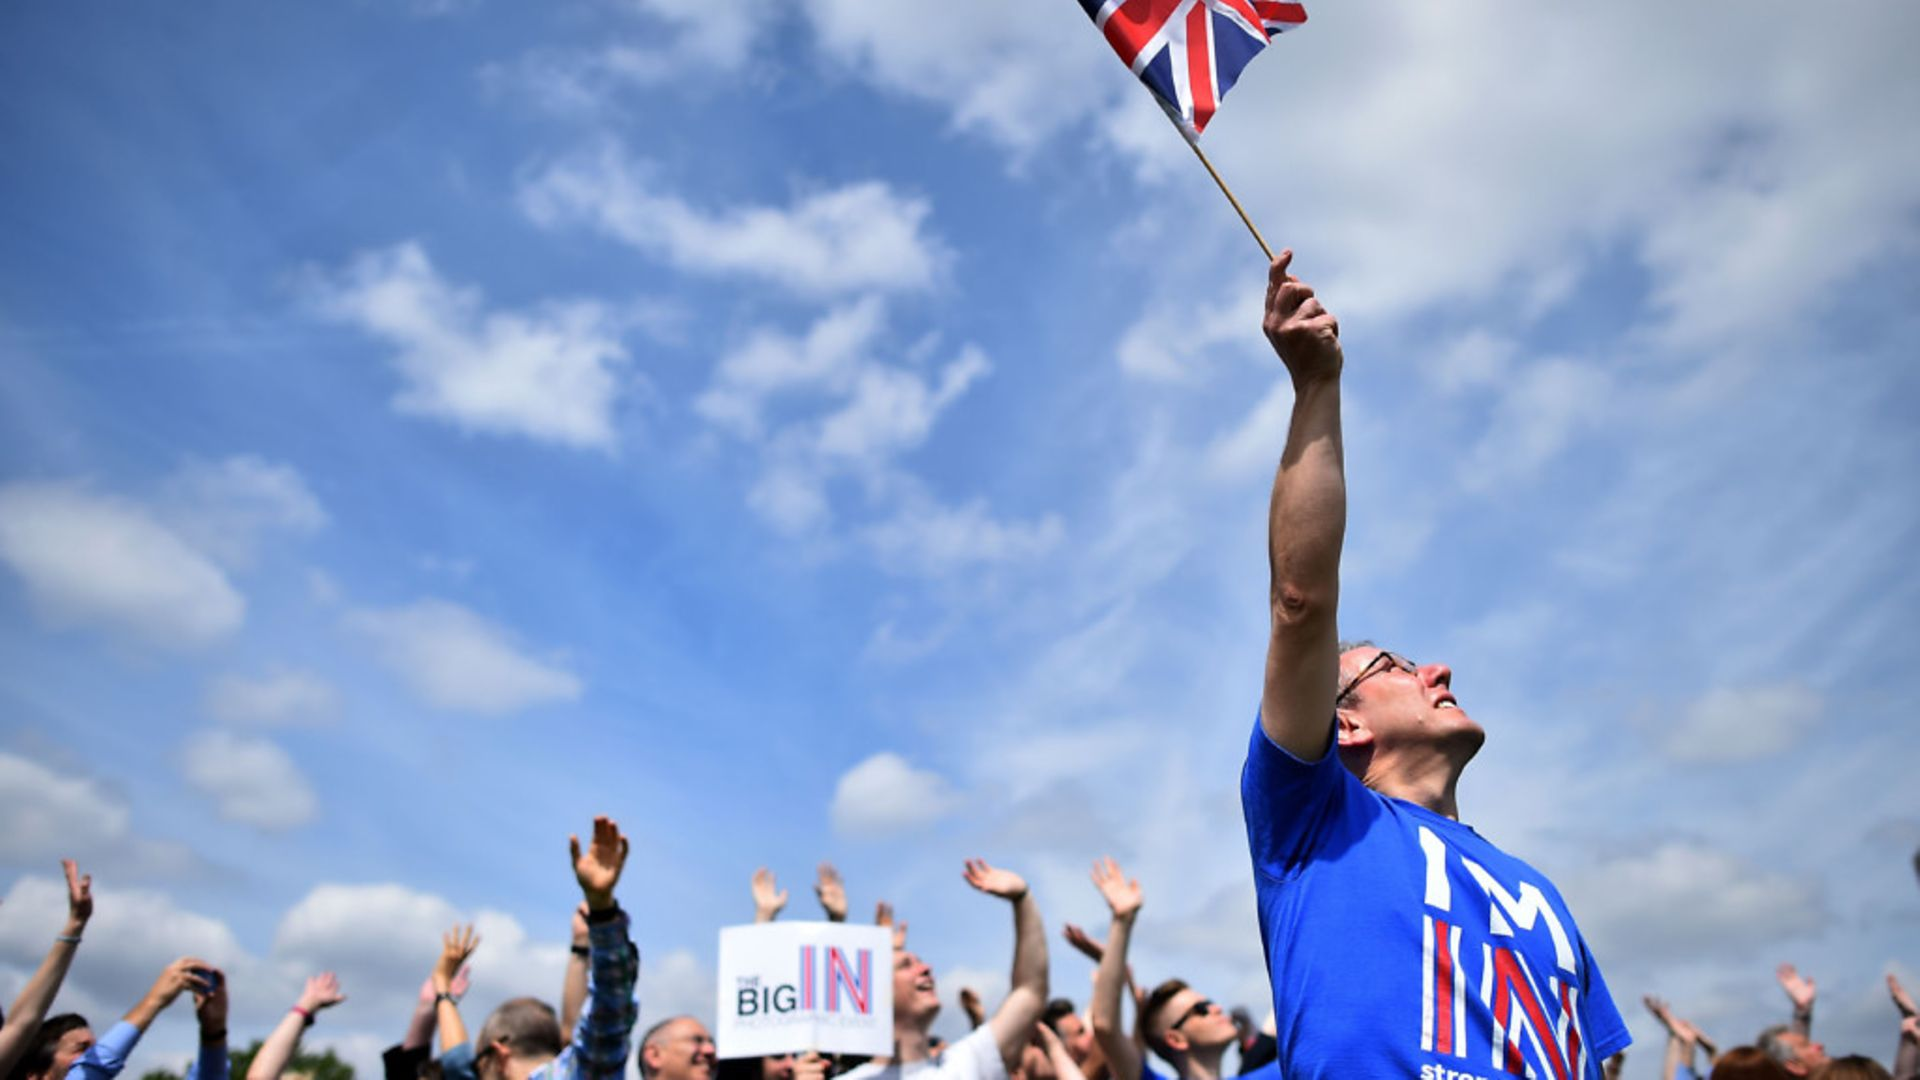 Pro-European campaigners at a rally - Credit: BEN STANSALL/AFP/Getty Images